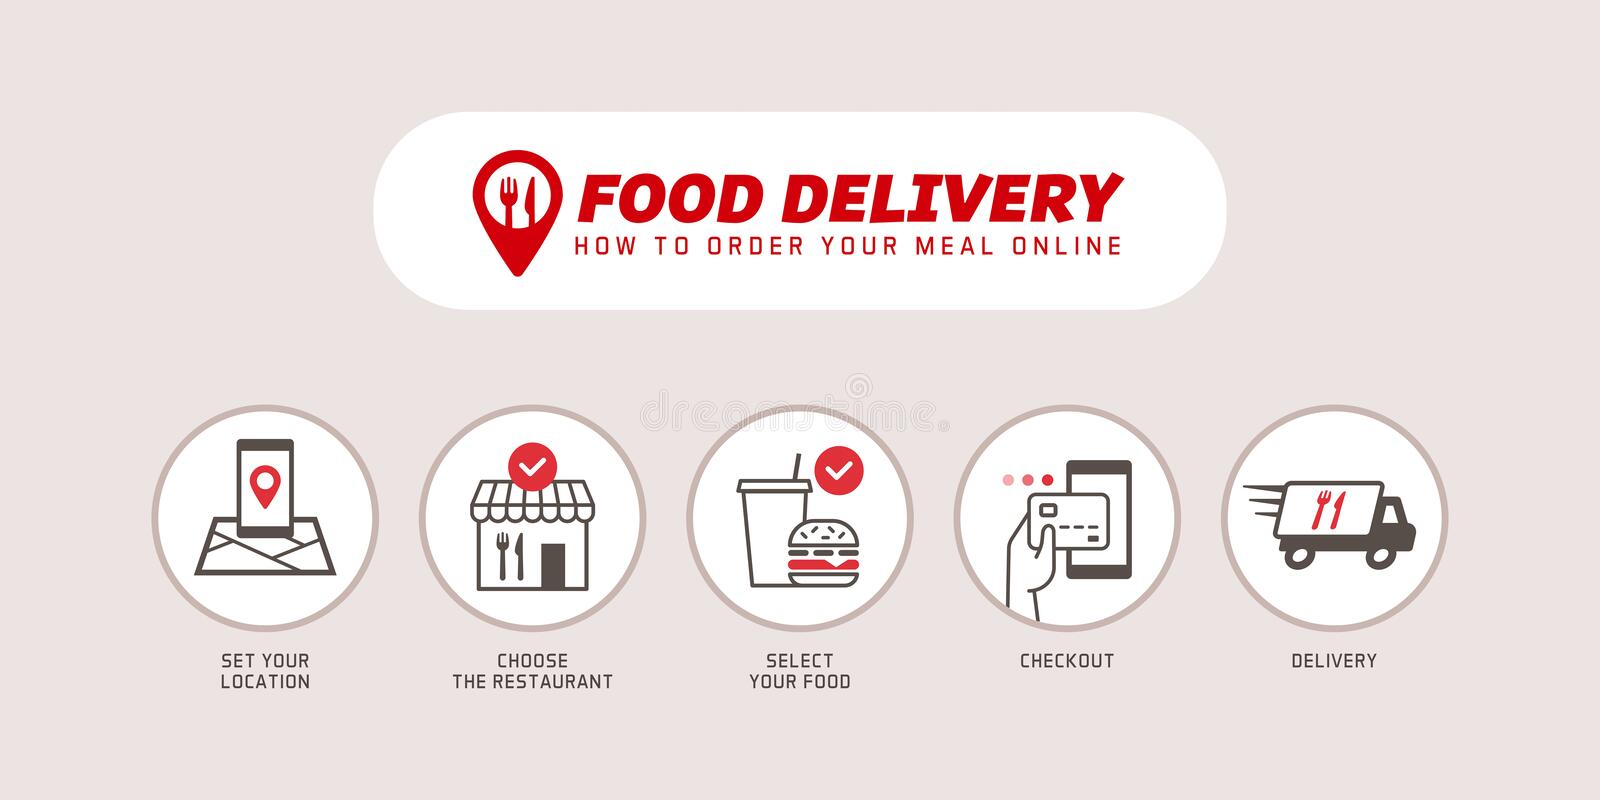 How to order food online using a smartphone app vector illustration